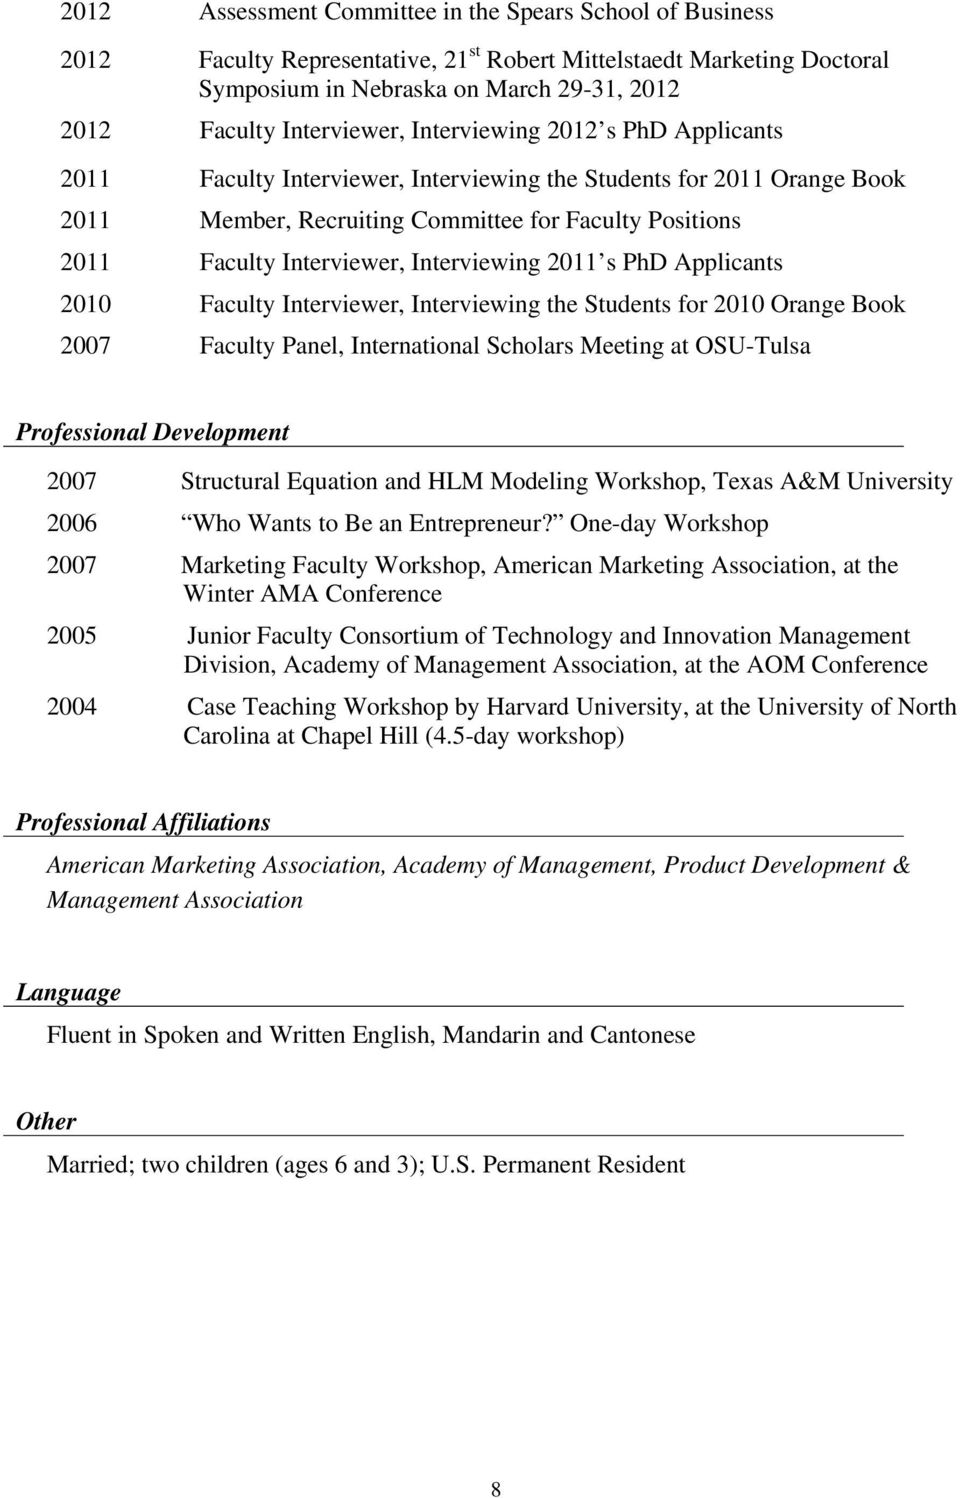 Interviewer, Interviewing 2011 s PhD Applicants 2010 Faculty Interviewer, Interviewing the Students for 2010 Orange Book 2007 Faculty Panel, International Scholars Meeting at OSU-Tulsa Professional